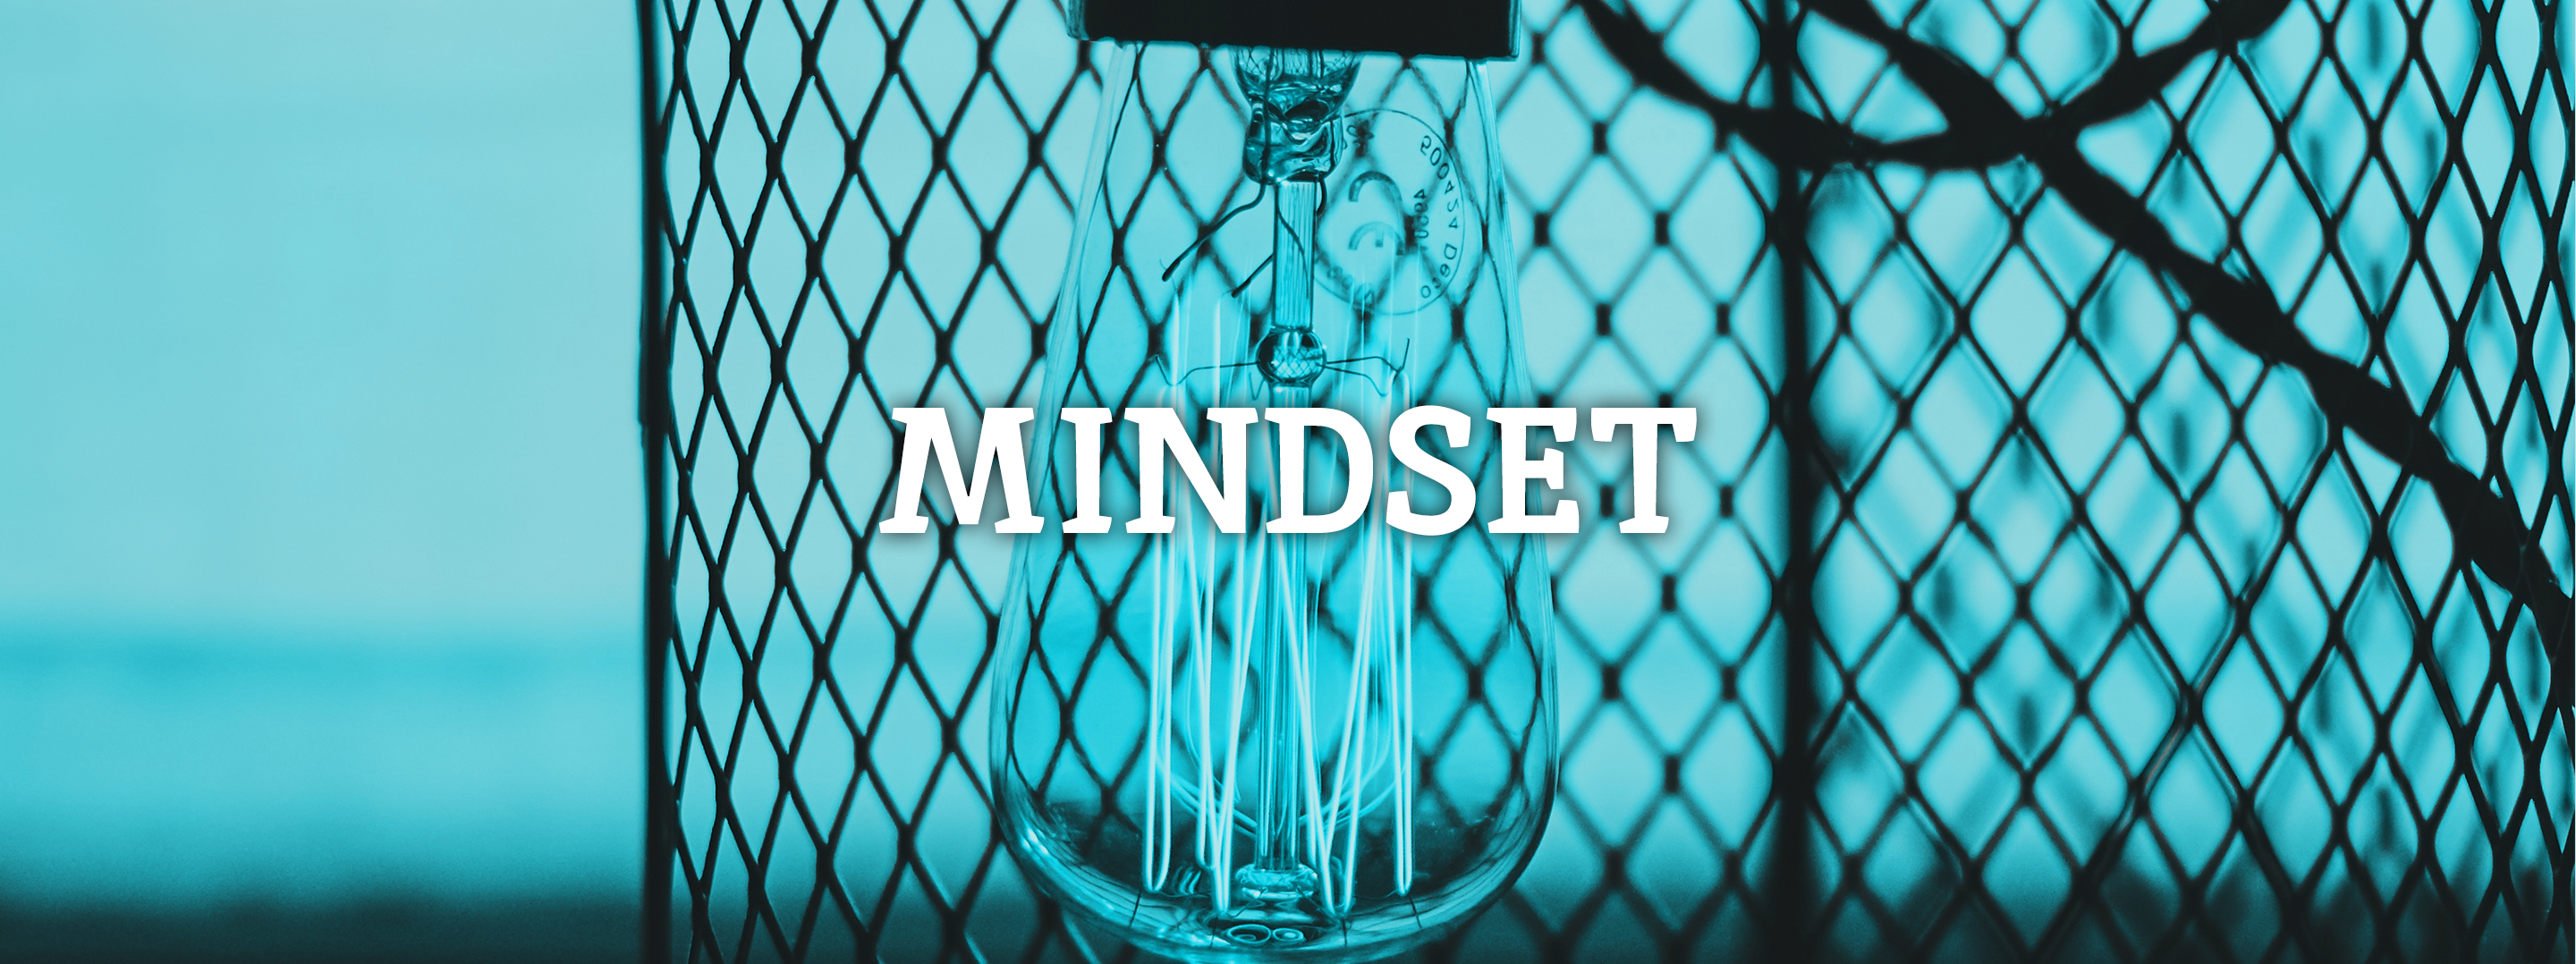 Having the right mindset